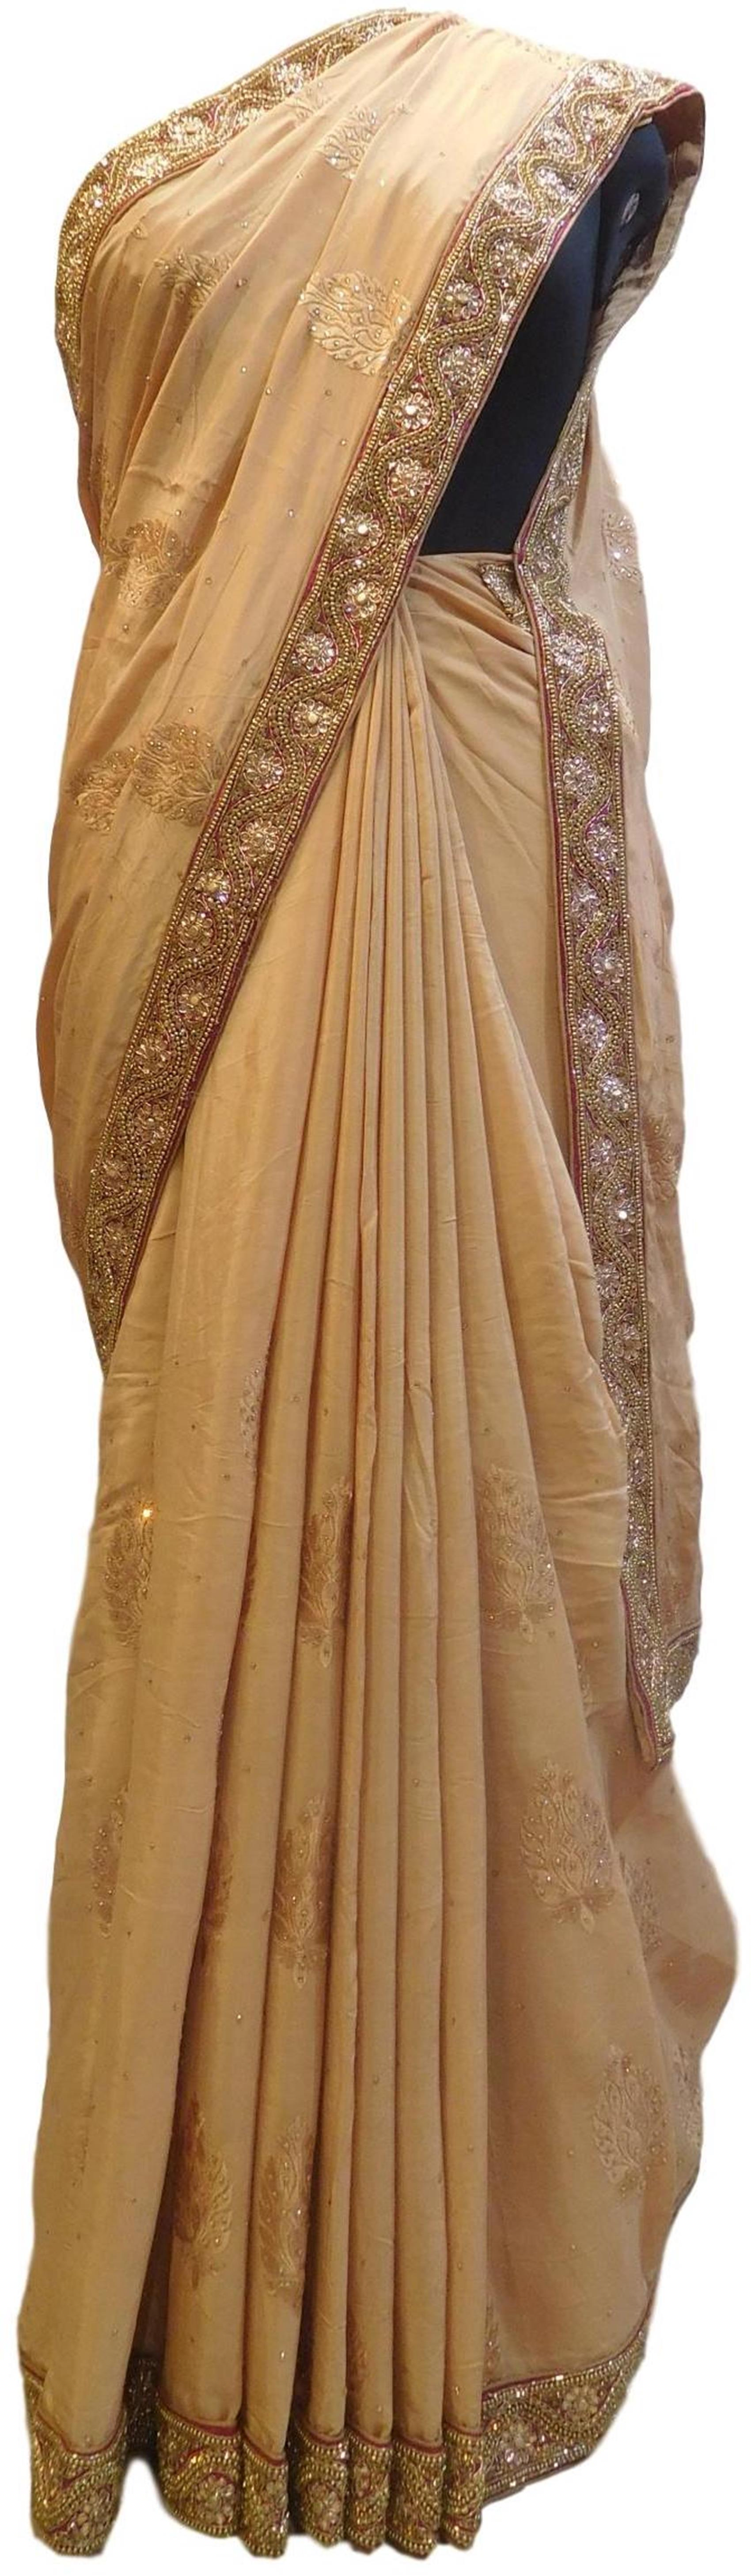 Beige Designer Wedding Partywear Ethnic Bridal Pure Crepe Hand Embroidery Cutdana Thread Bullion Stone Beads Work Kolkata Women Saree Sari E286